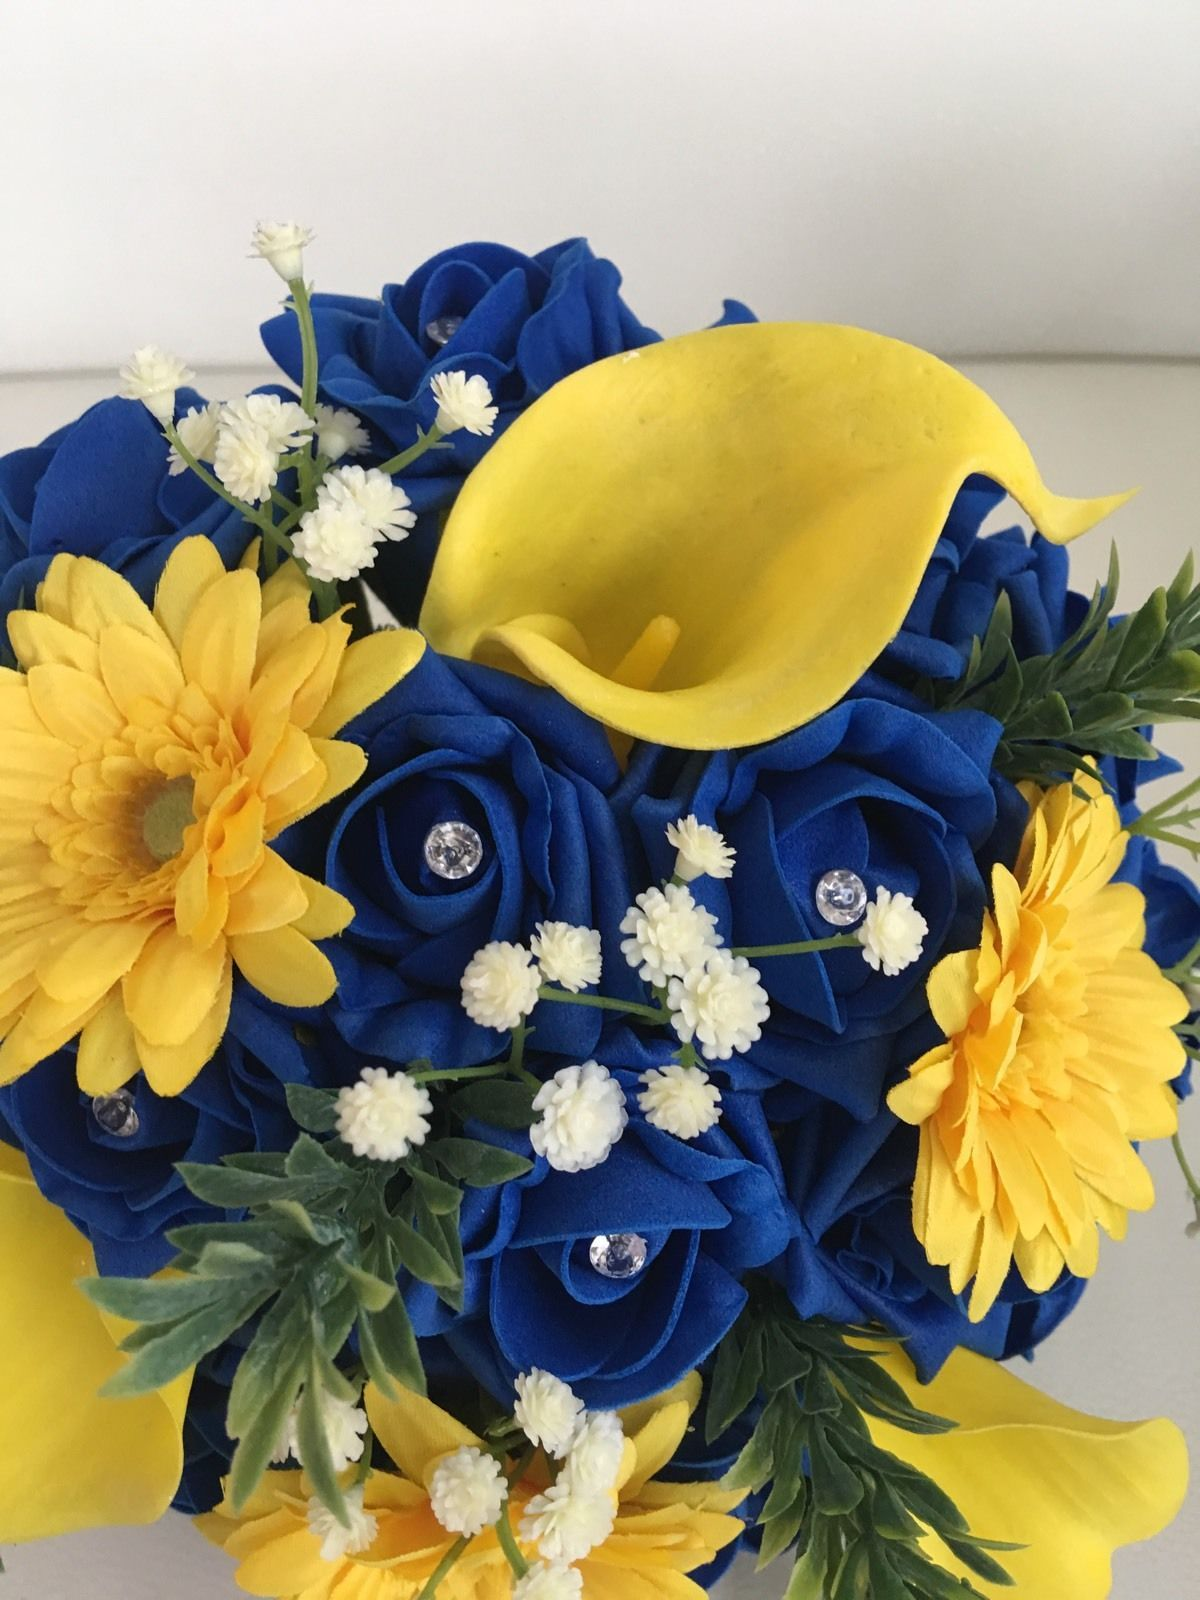 Outstanding blue and yellow flower bouquet image collection ball bouquet wedding mixed flower blue yellow bridesmaid vintage country izmirmasajfo